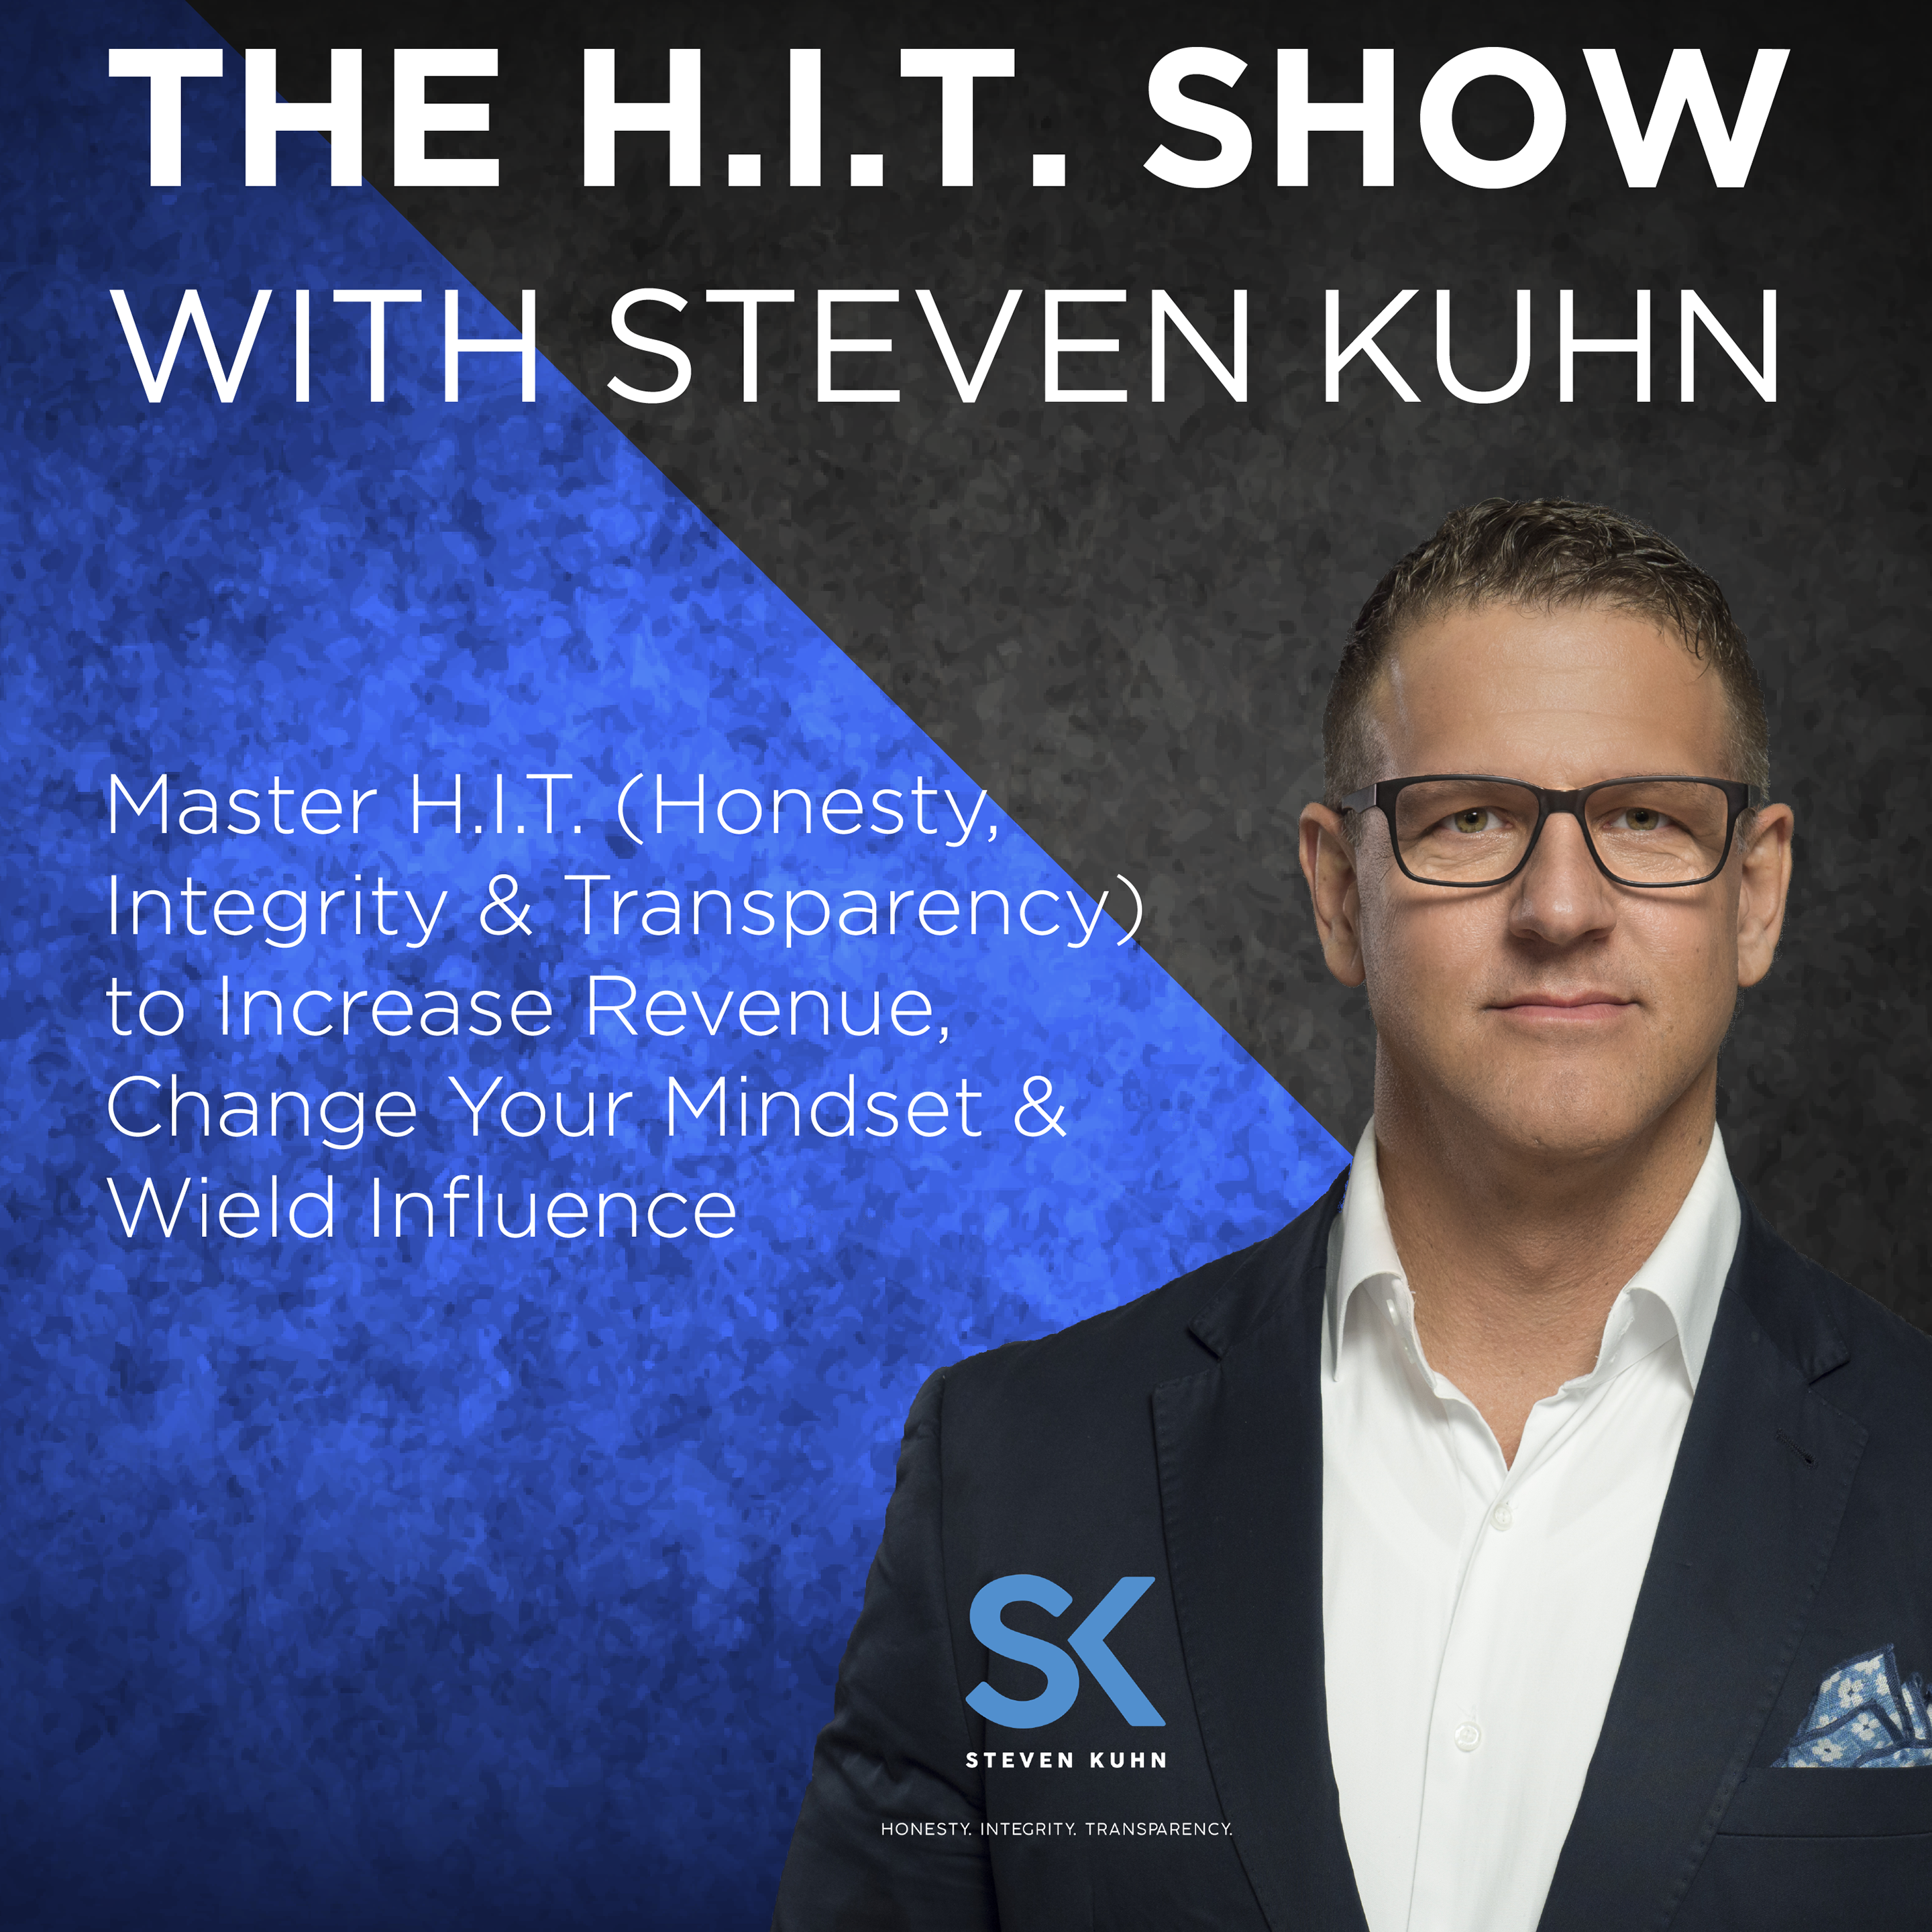 The H.I.T. Show with Steven Kuhn show art